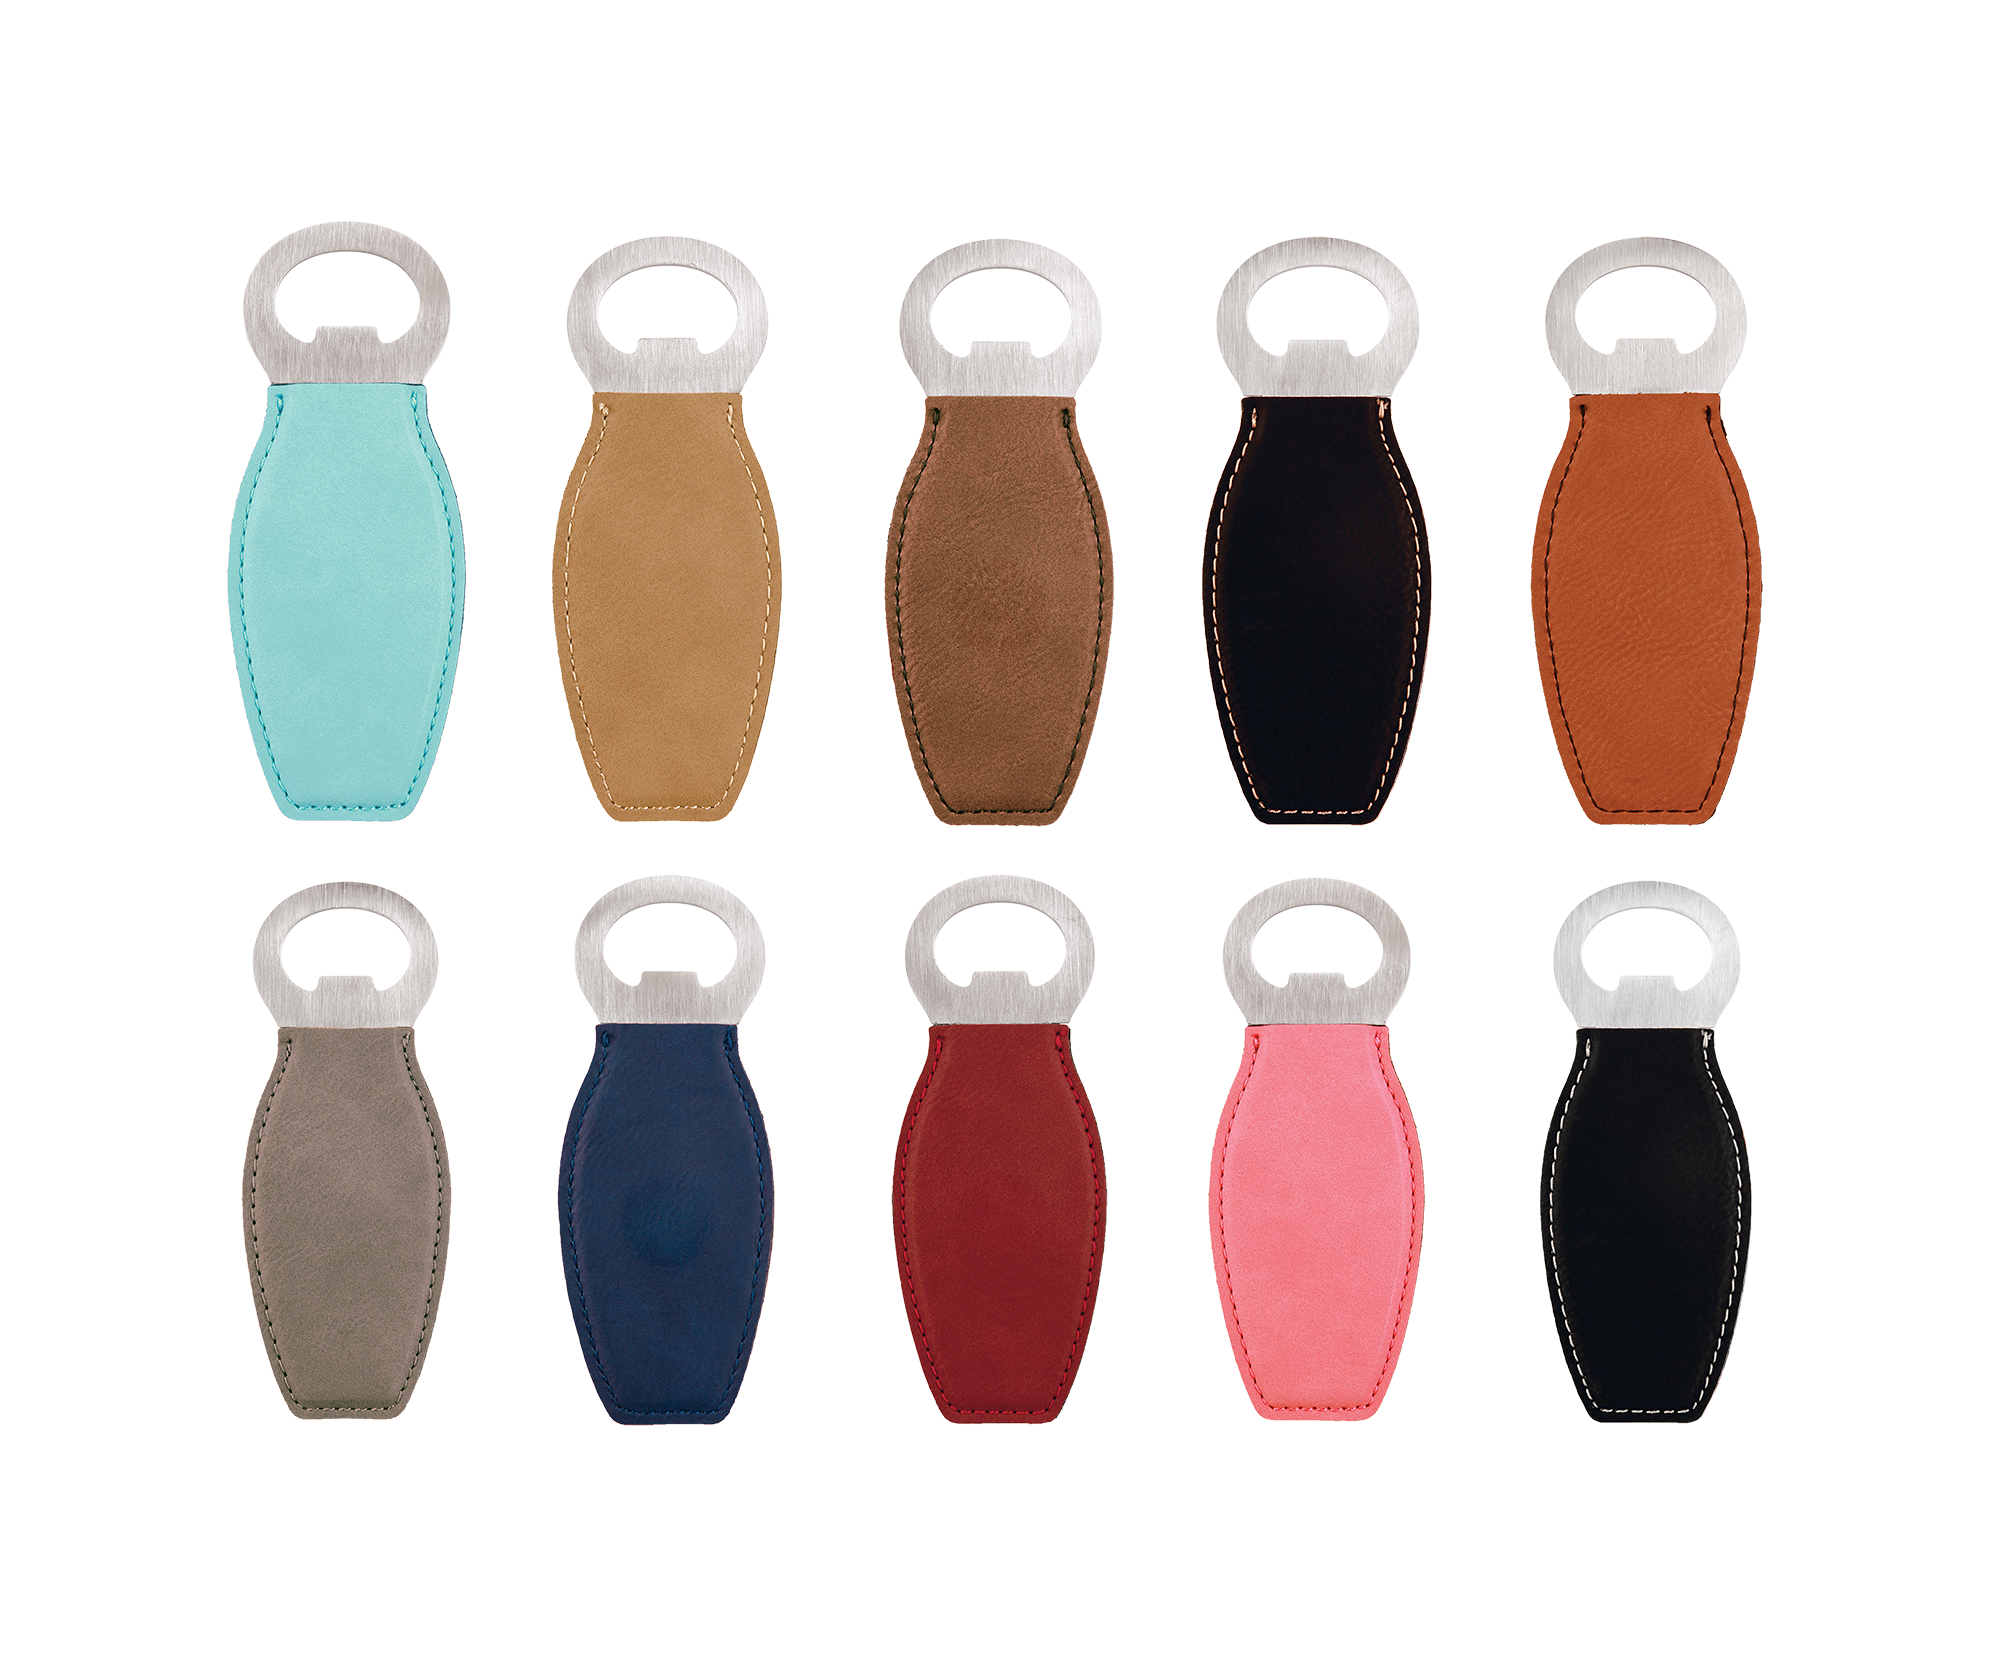 Personalized Leatherette Bottle Openers